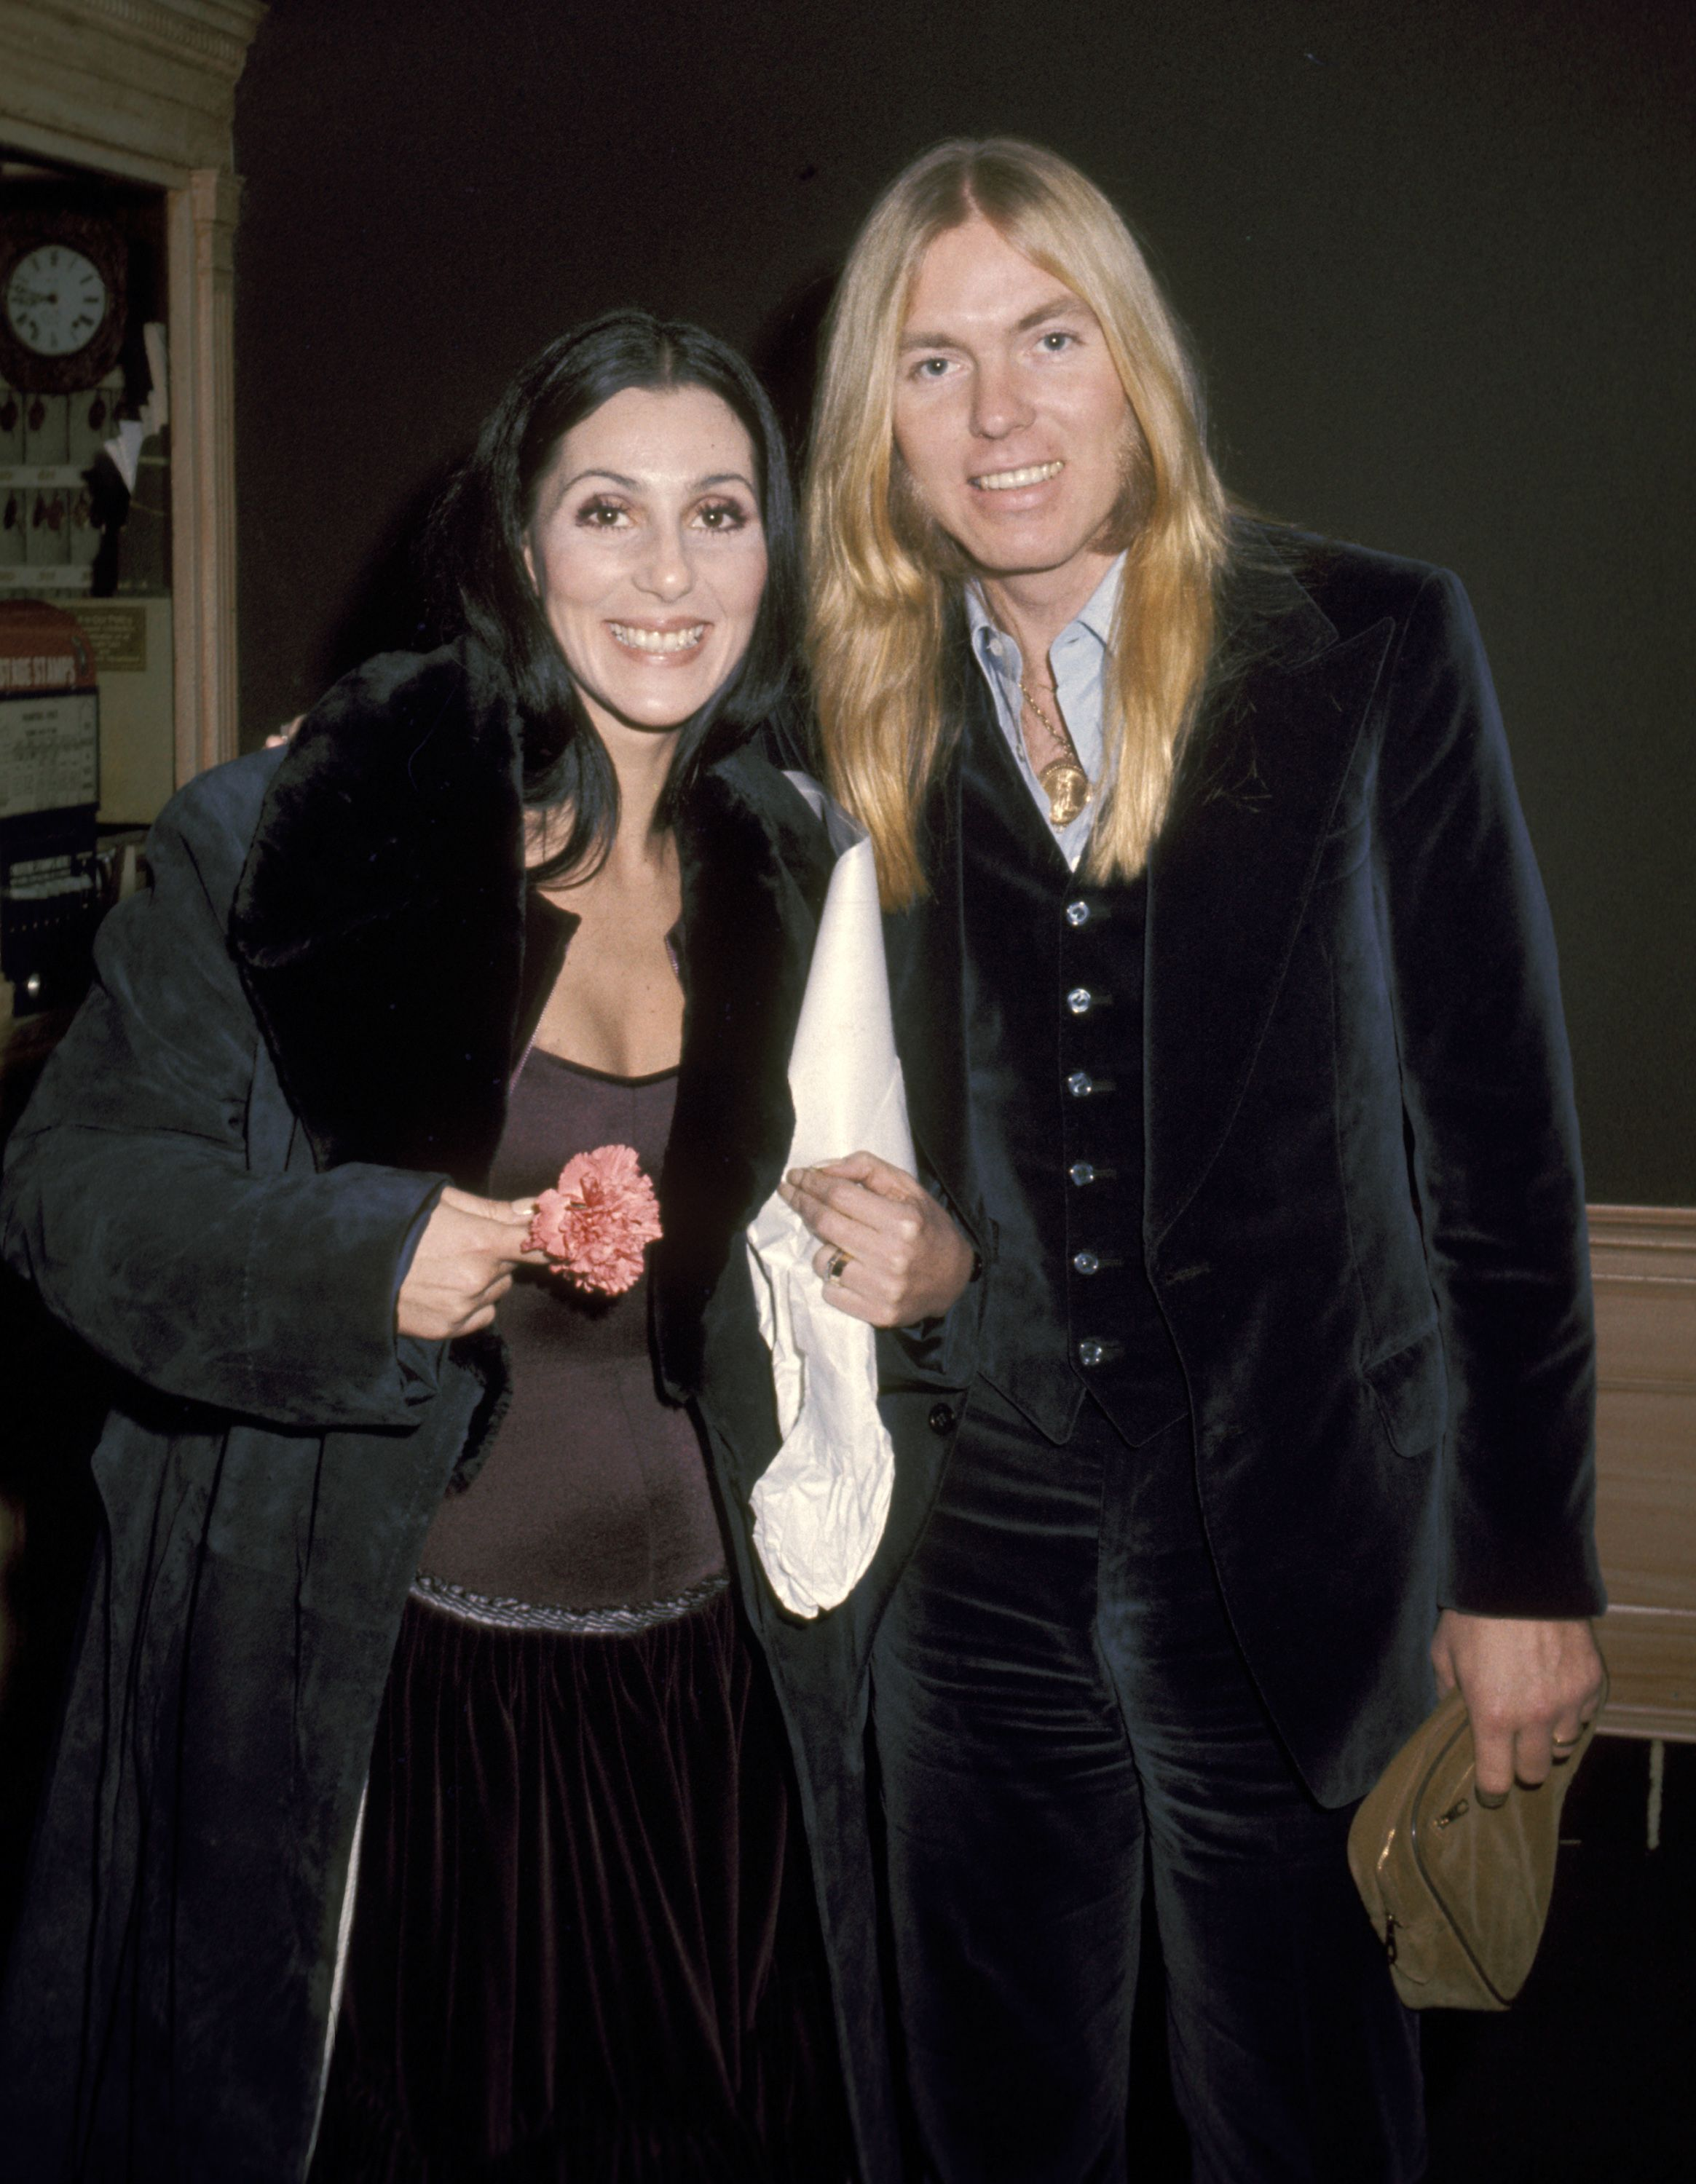 Cher and Gregg Allman in Georgetown   Source: Getty Images